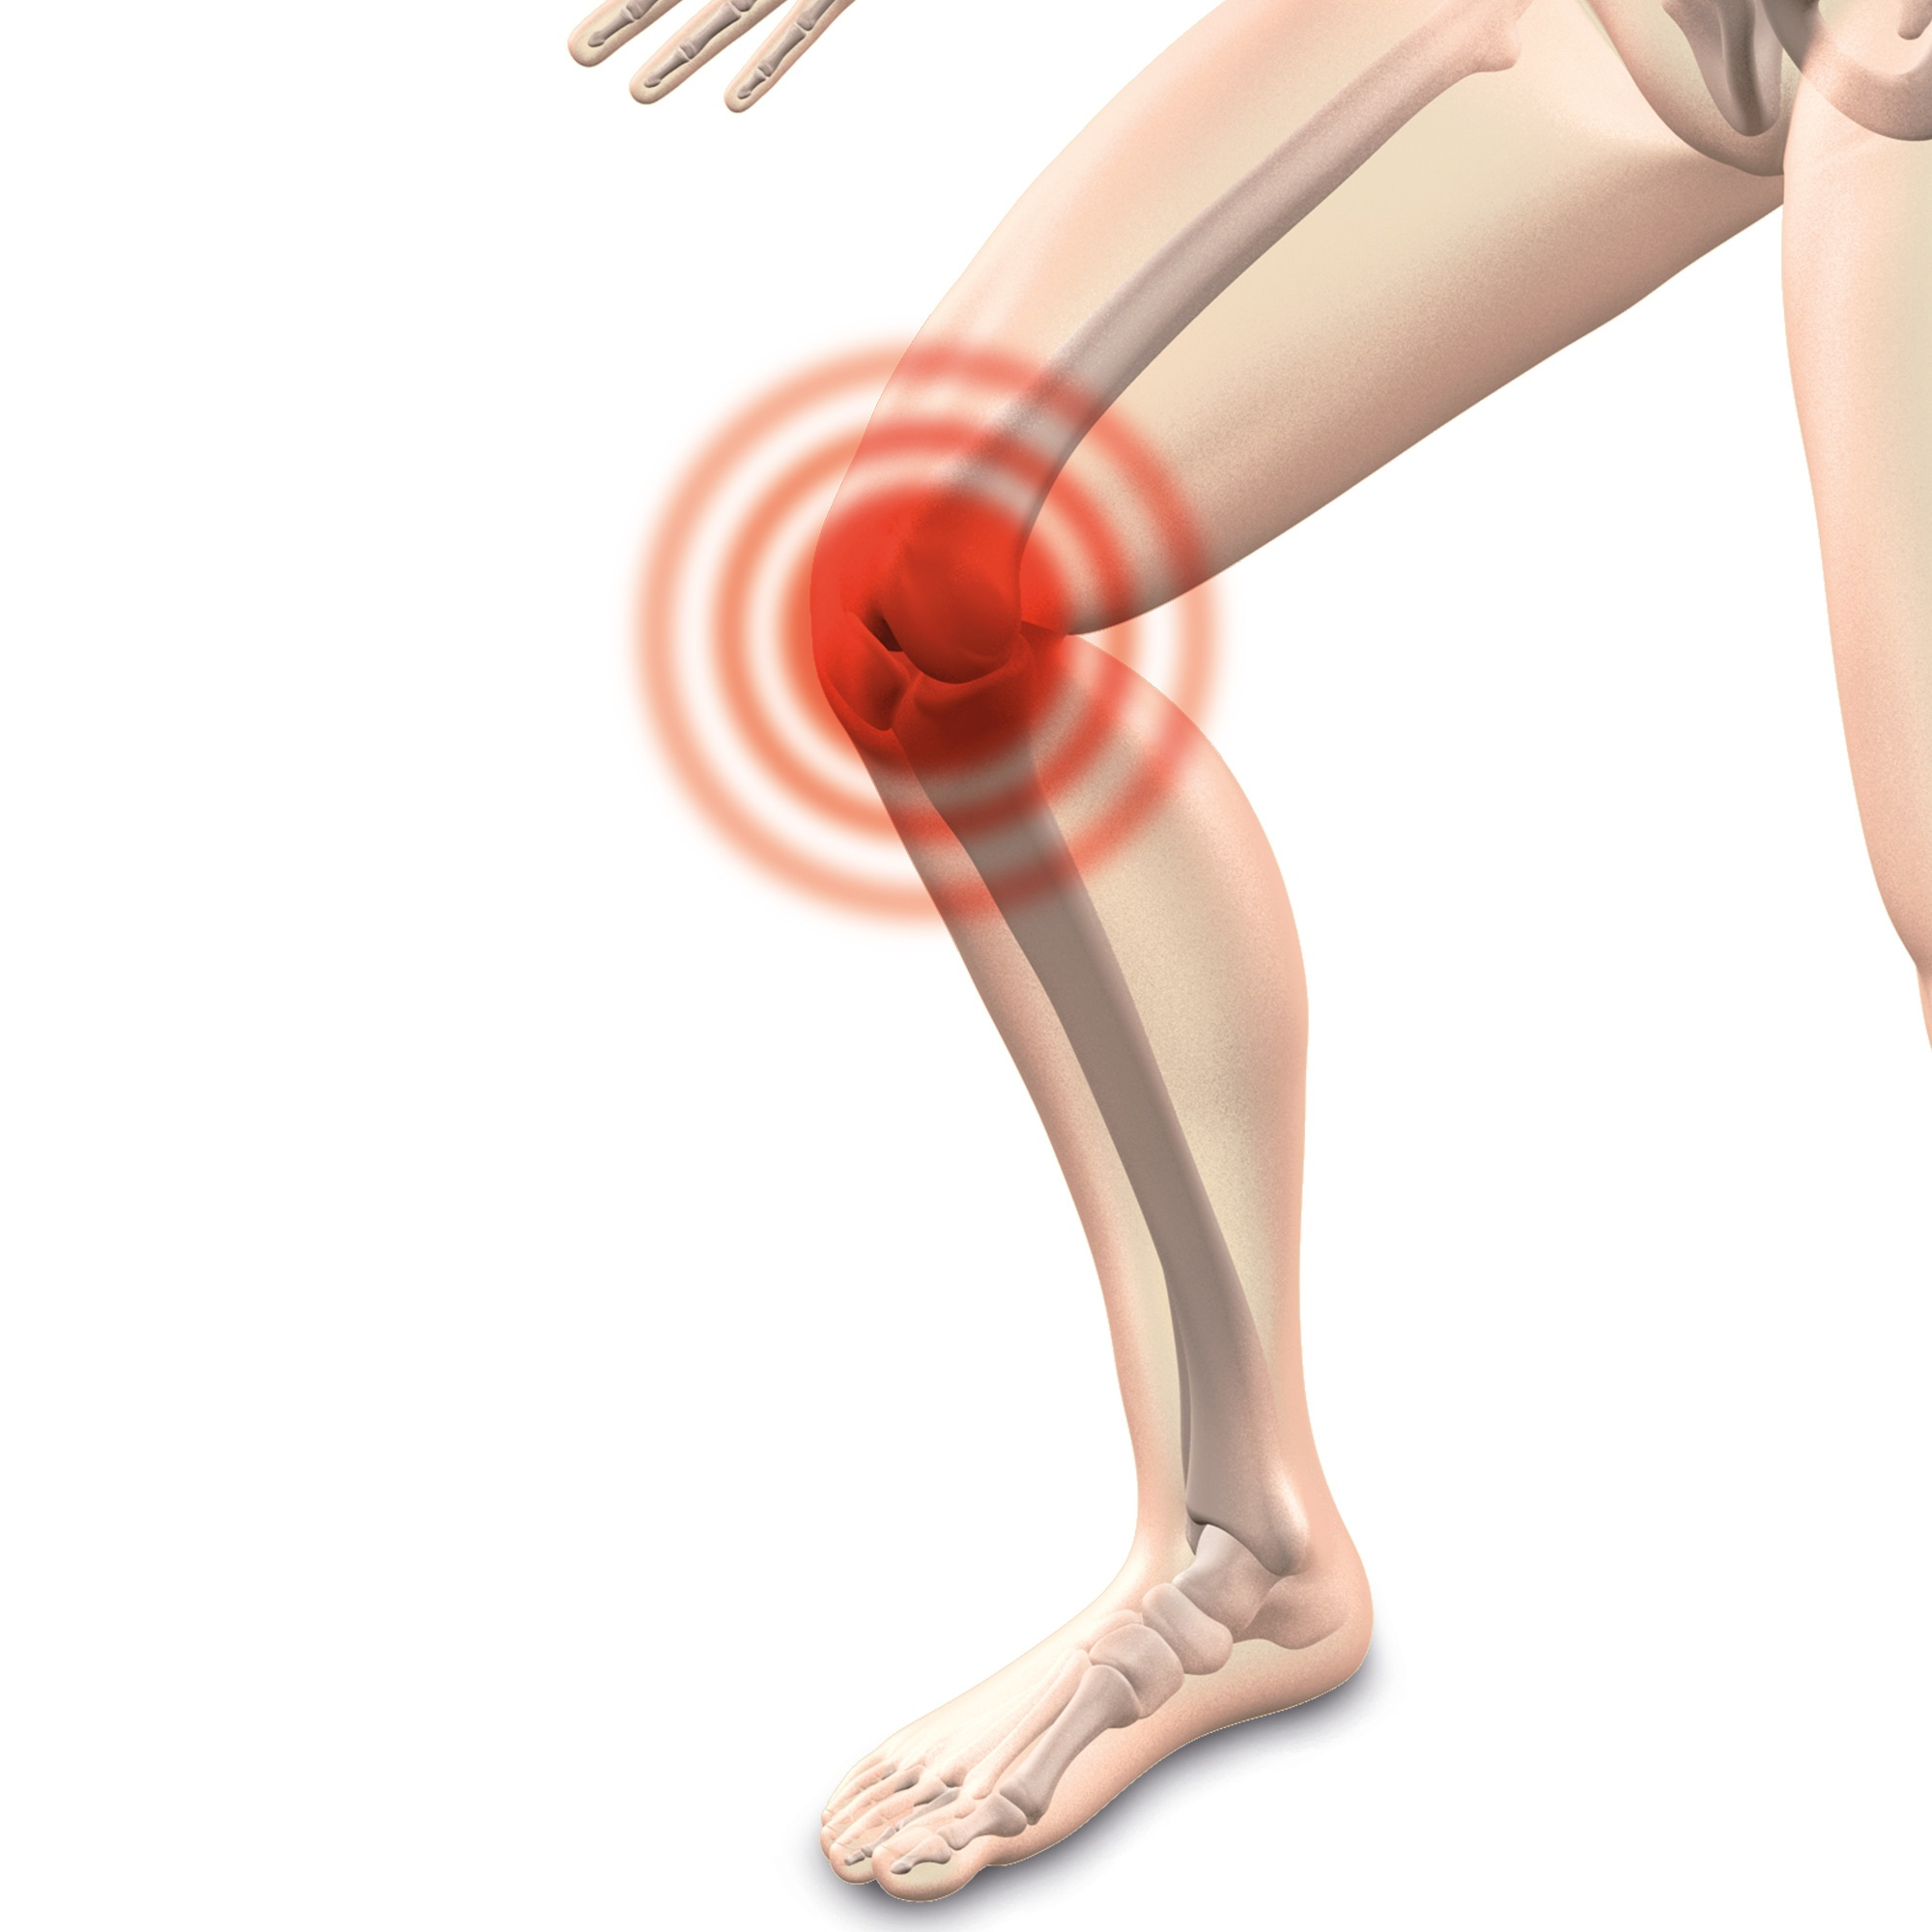 Anti Arthritis Solution: Ease The Pain And Ward Off Those Creaky Joints